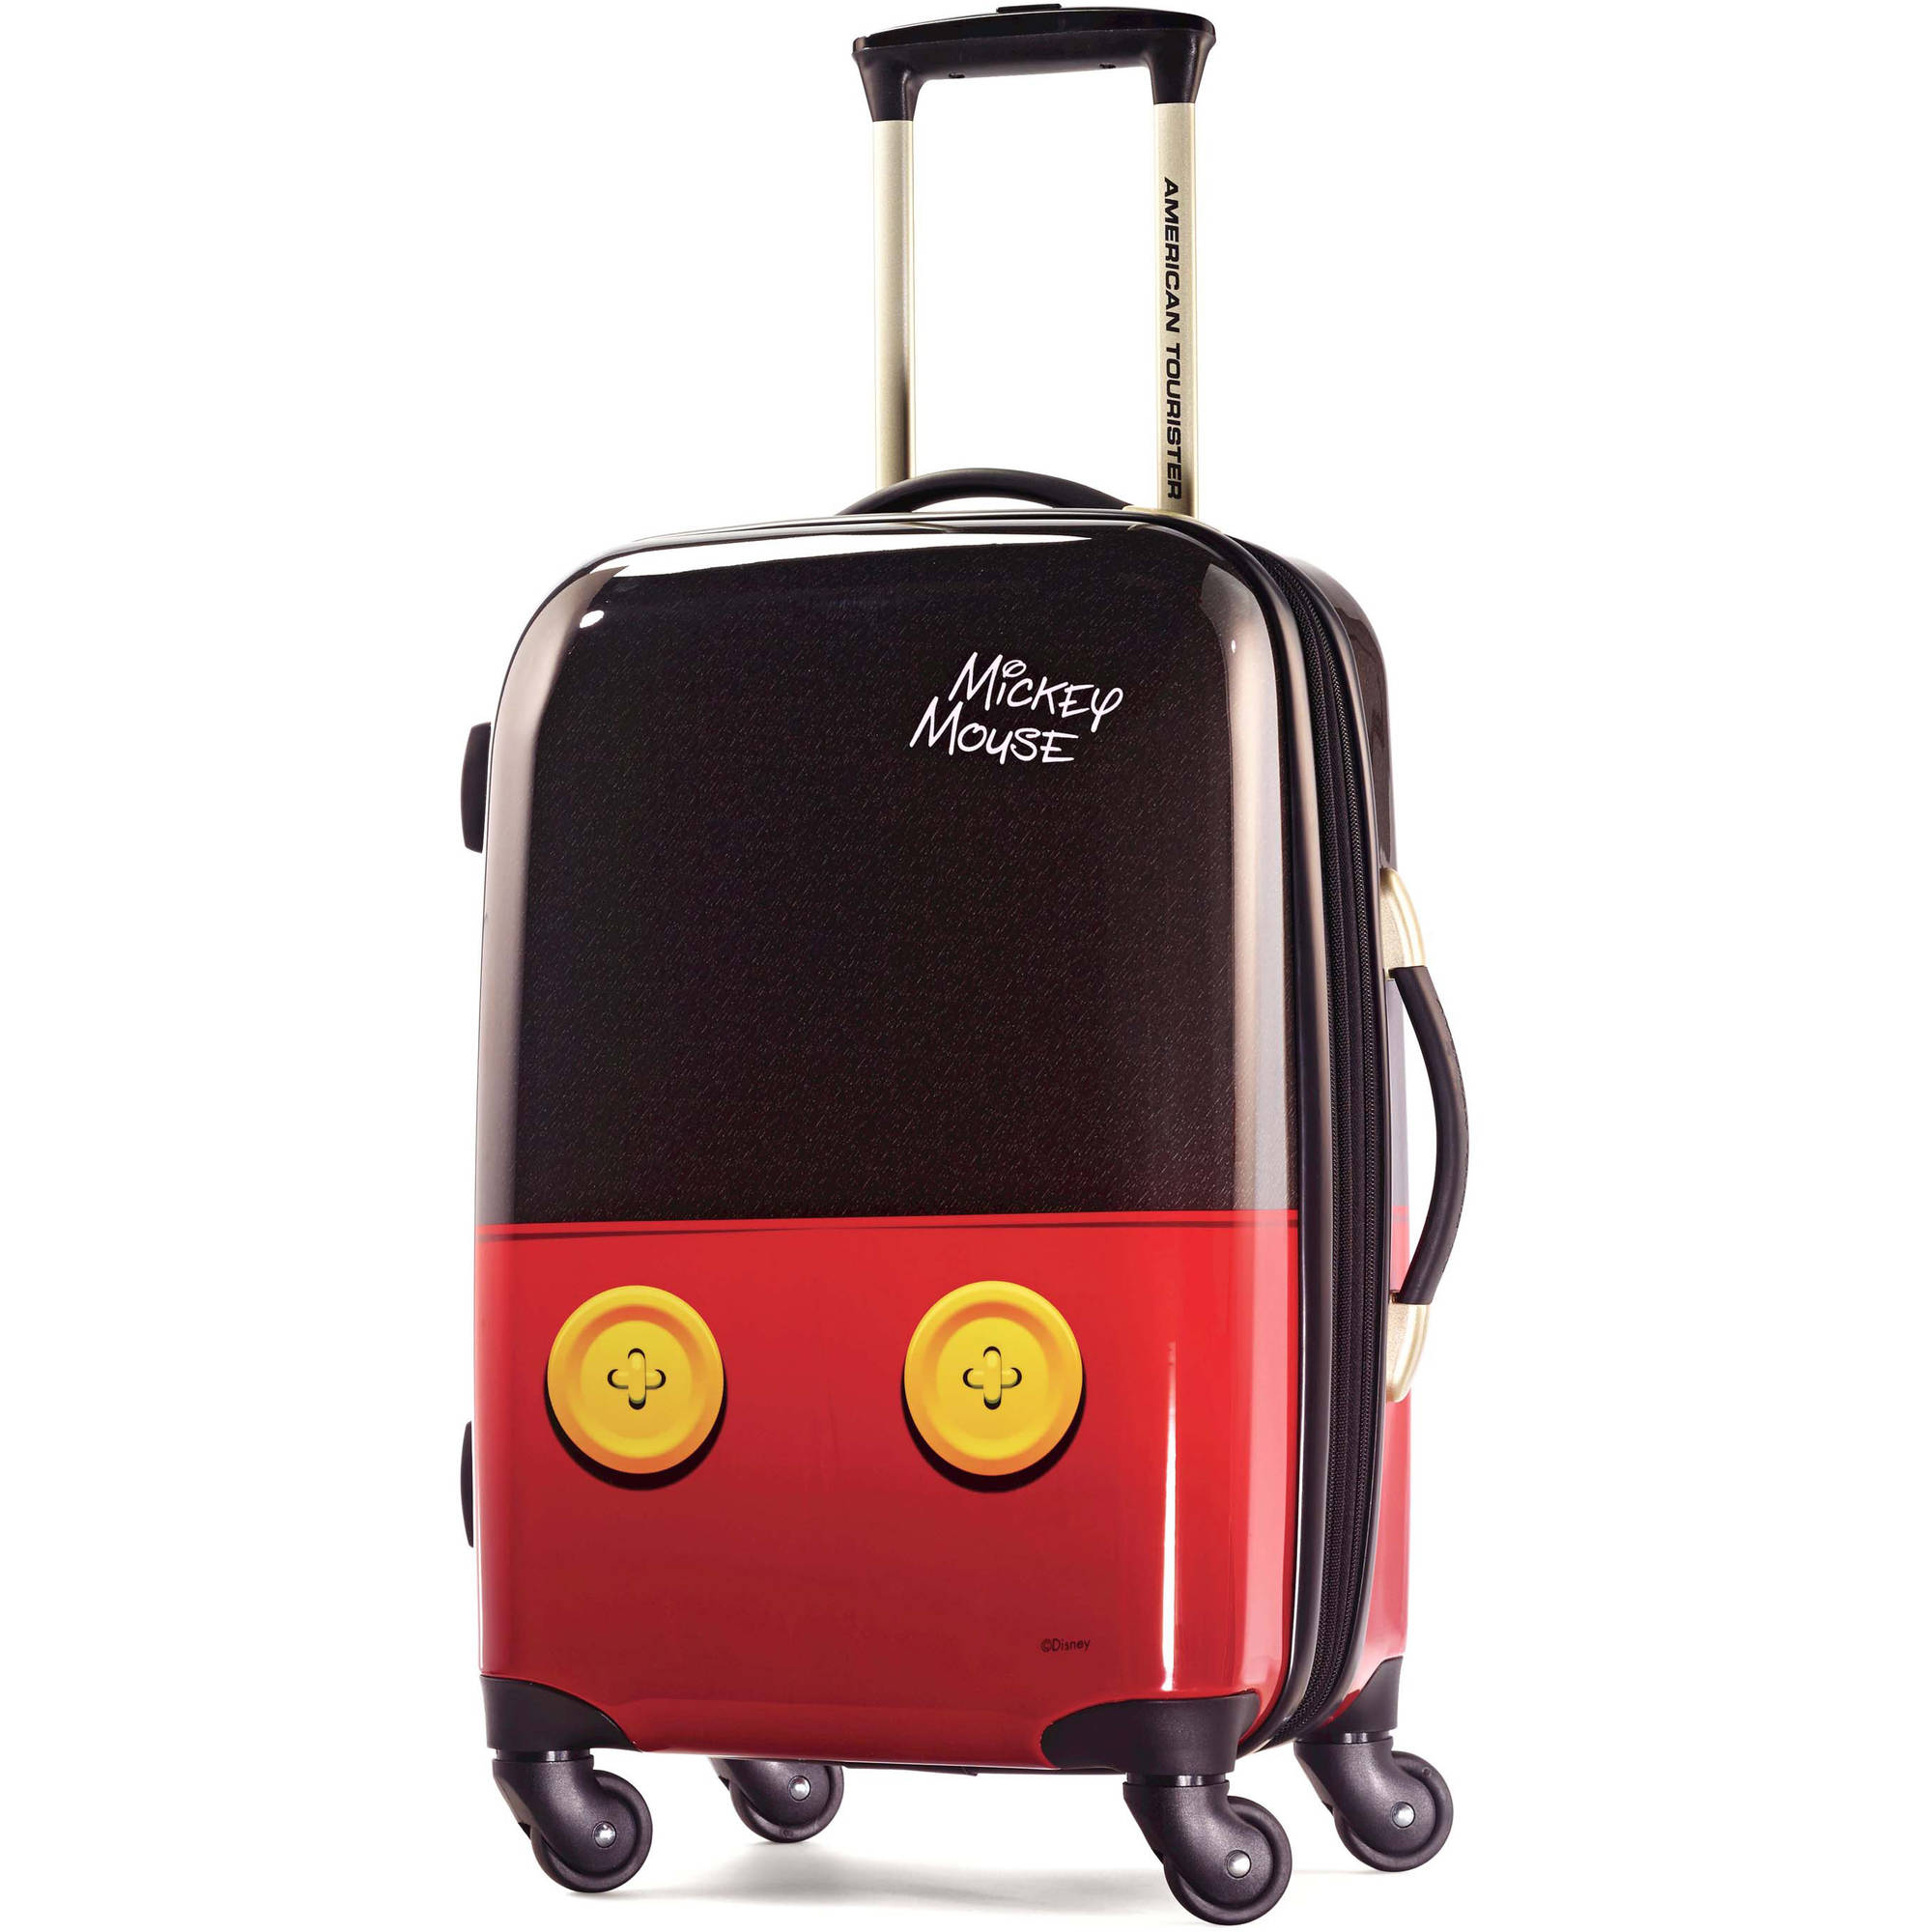 Disney Mickey Mouse Travel Roller Suitcase